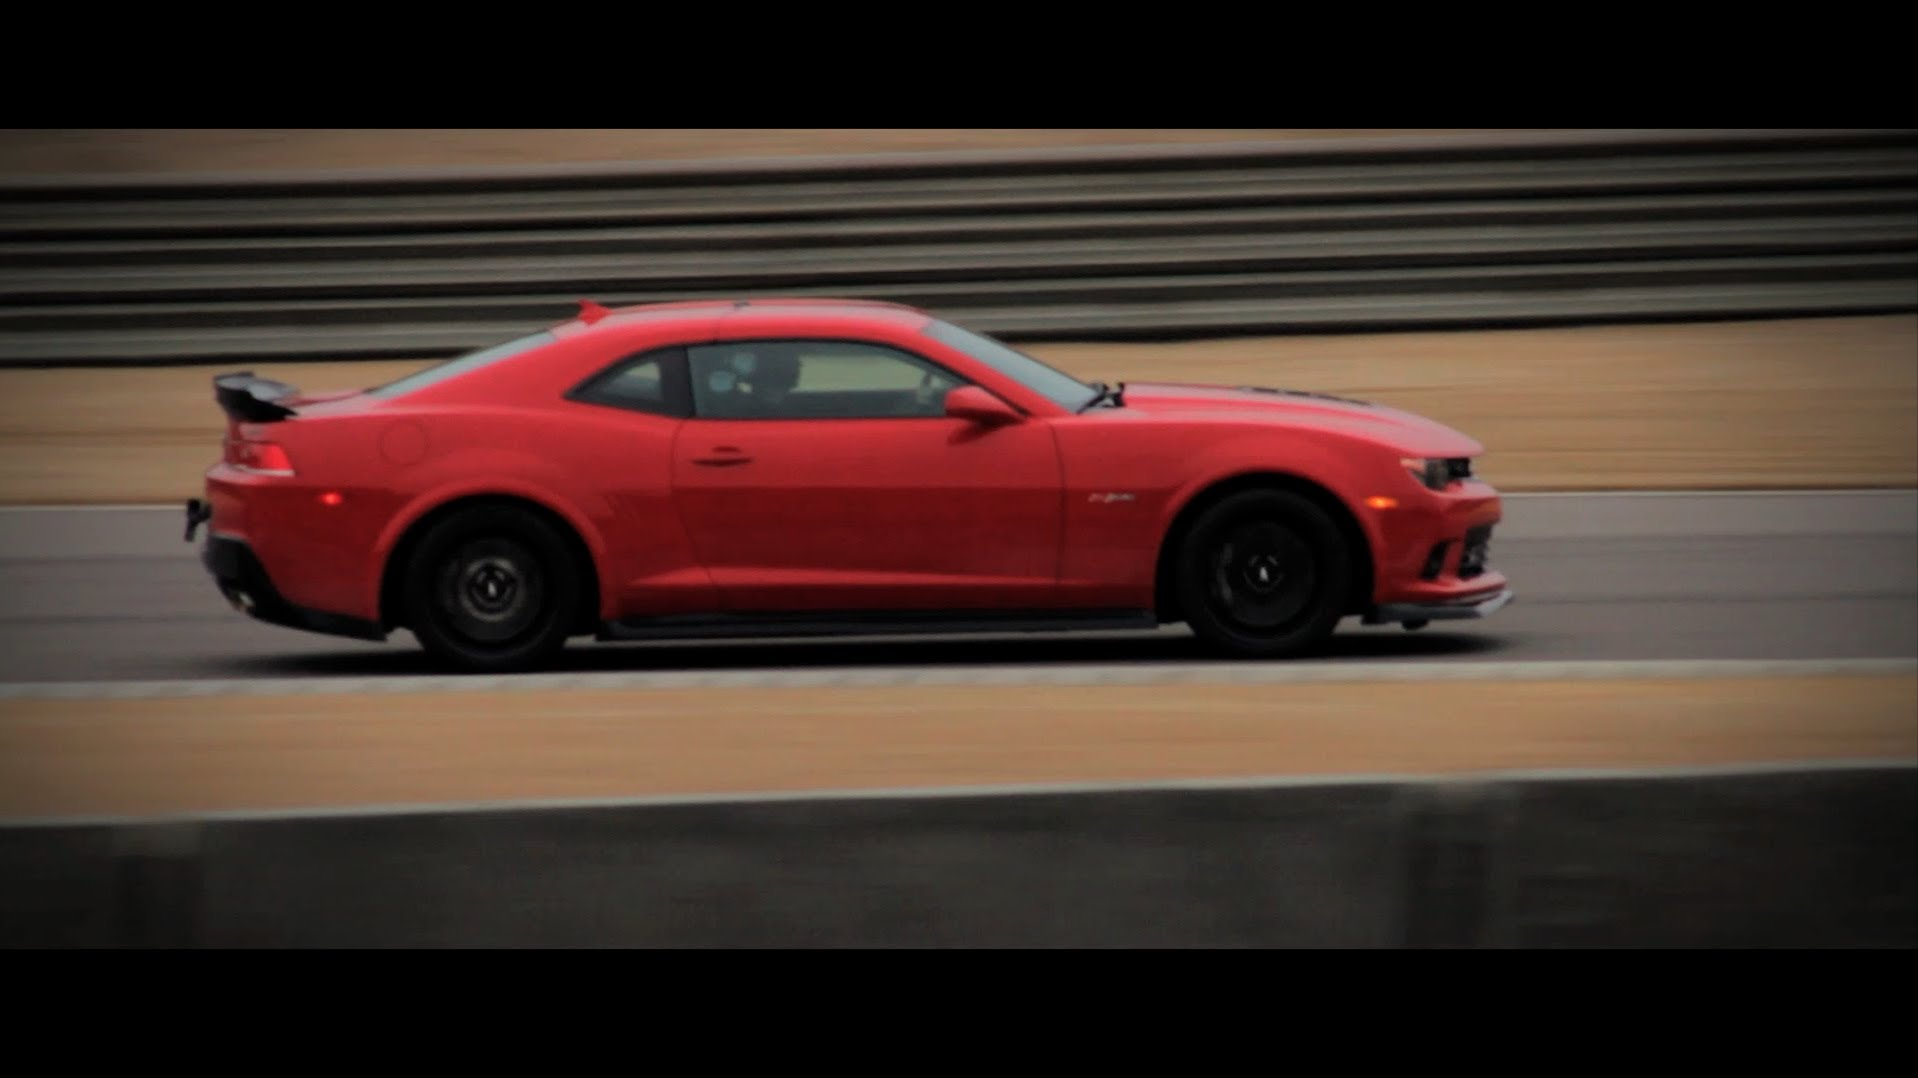 2014 Chevrolet Camaro Z/28: Dicing at Barber Motorsports Park